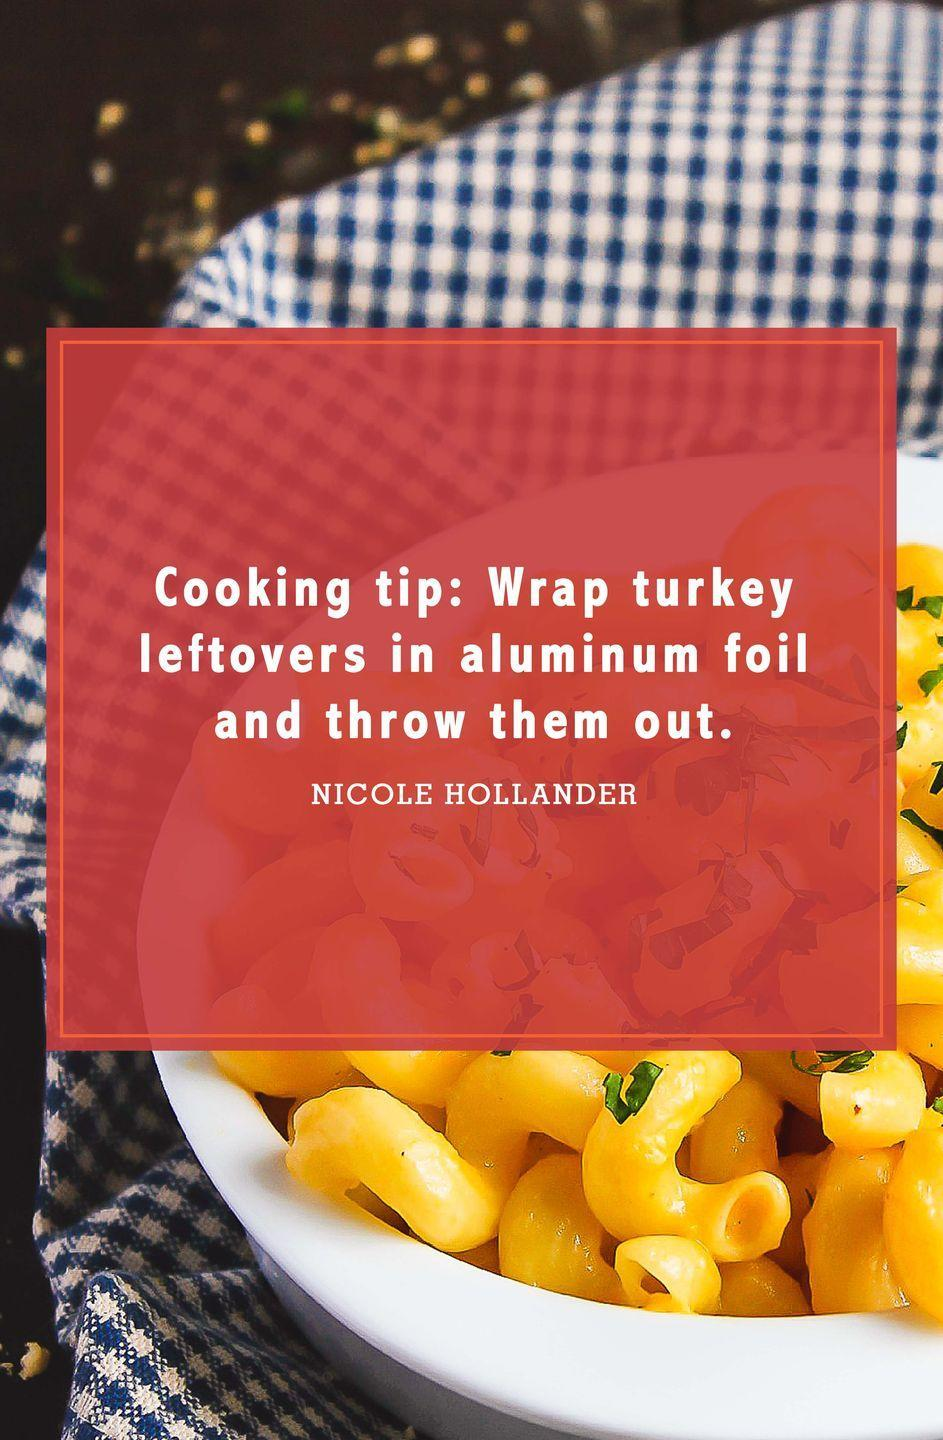 "<p>""Cooking tip: Wrap turkey leftovers in aluminum foil and throw them out.""</p>"